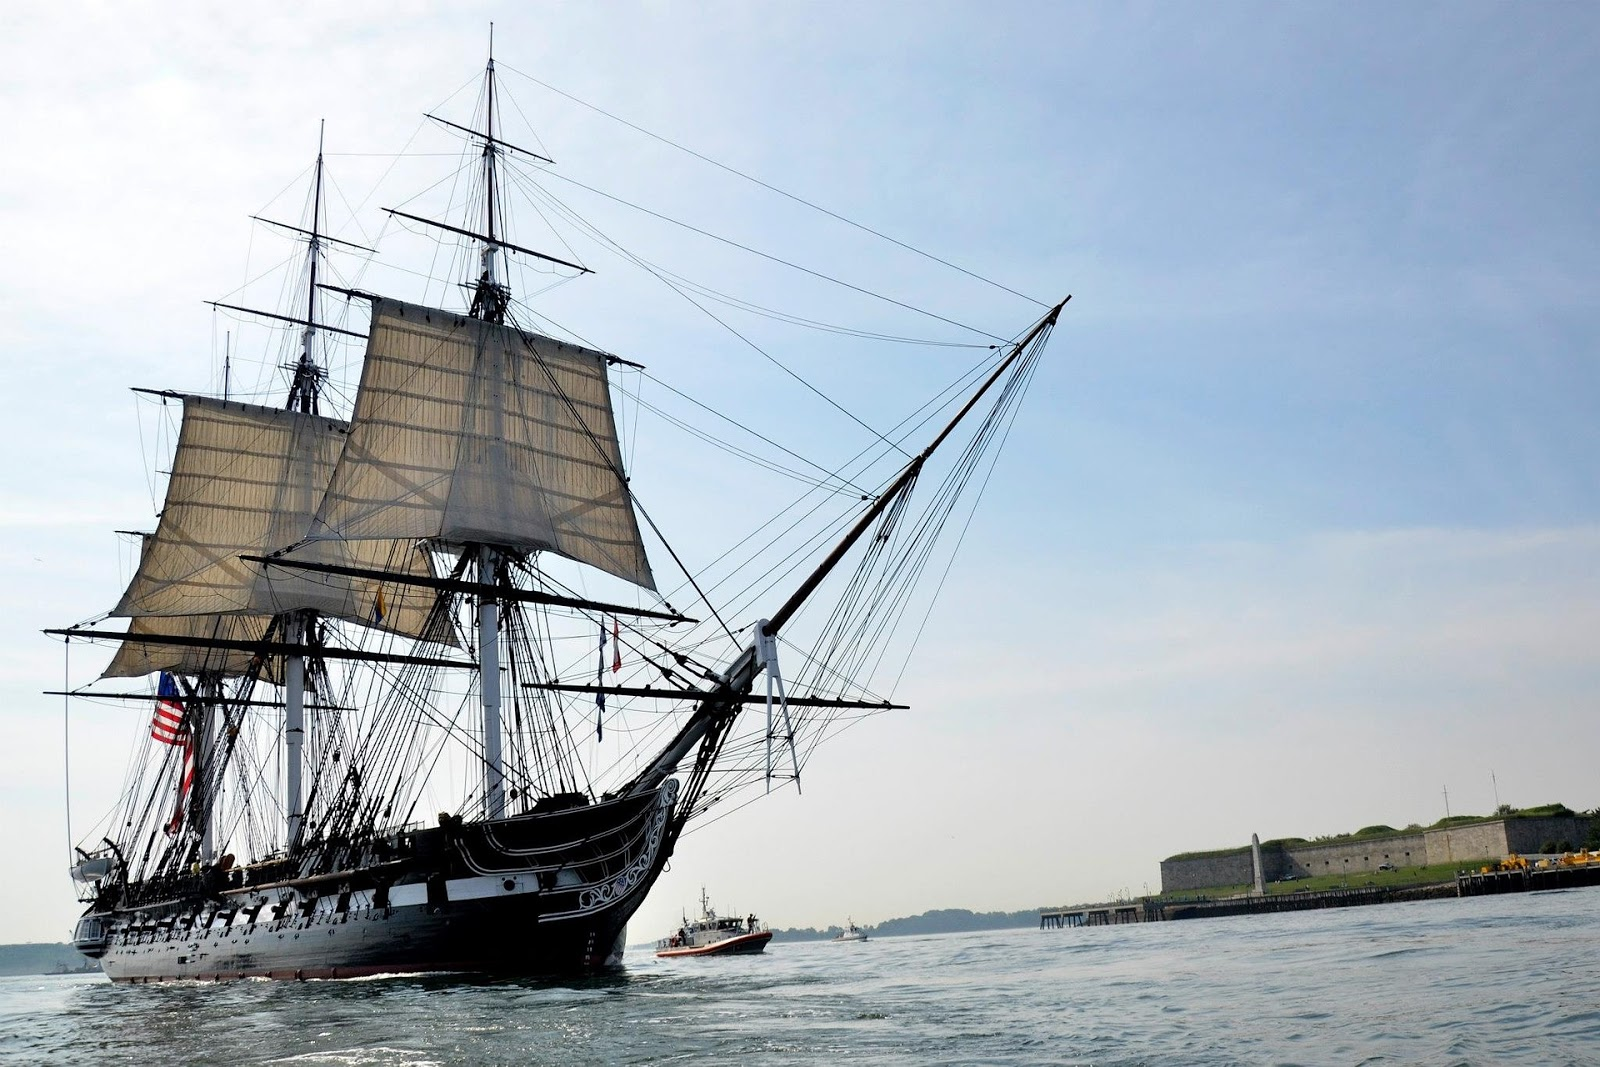 old-fashioned sailing warship sails across calm seas to illustrate a blog post about naval war movies